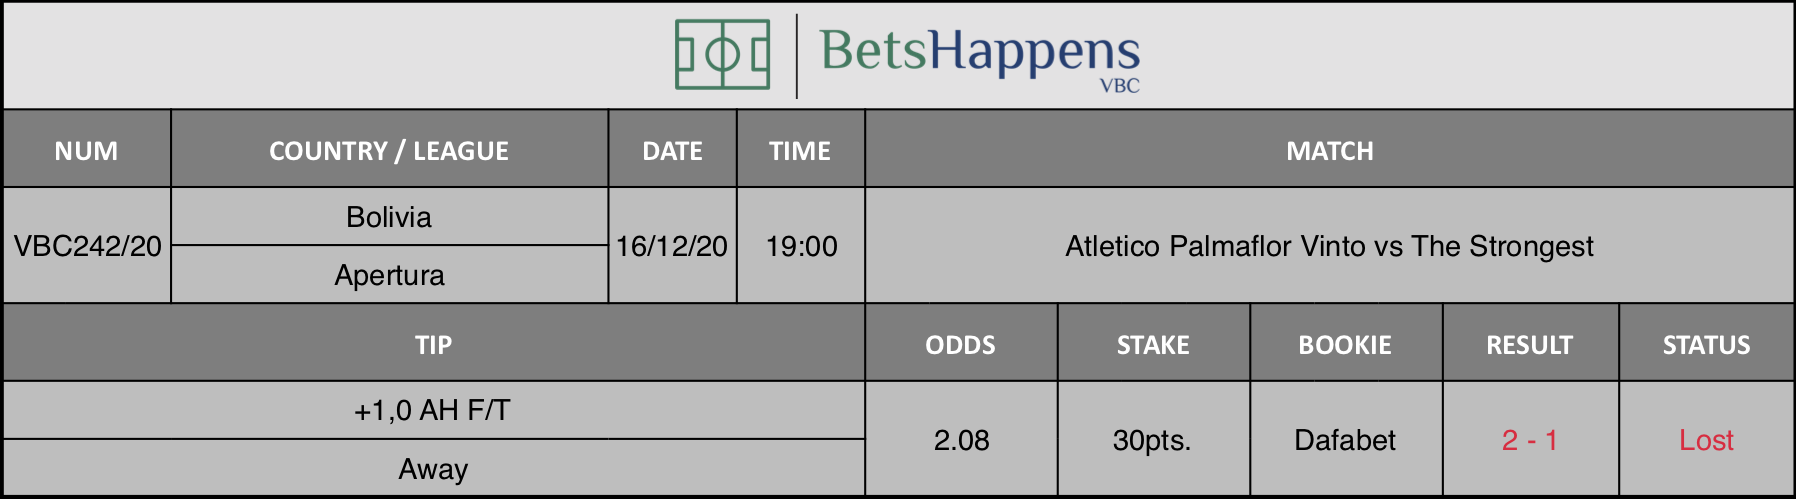 Results of our tip for the Atletico Palmaflor Vinto vs Strongest match where +1,0 AH F/T Away is recommended.